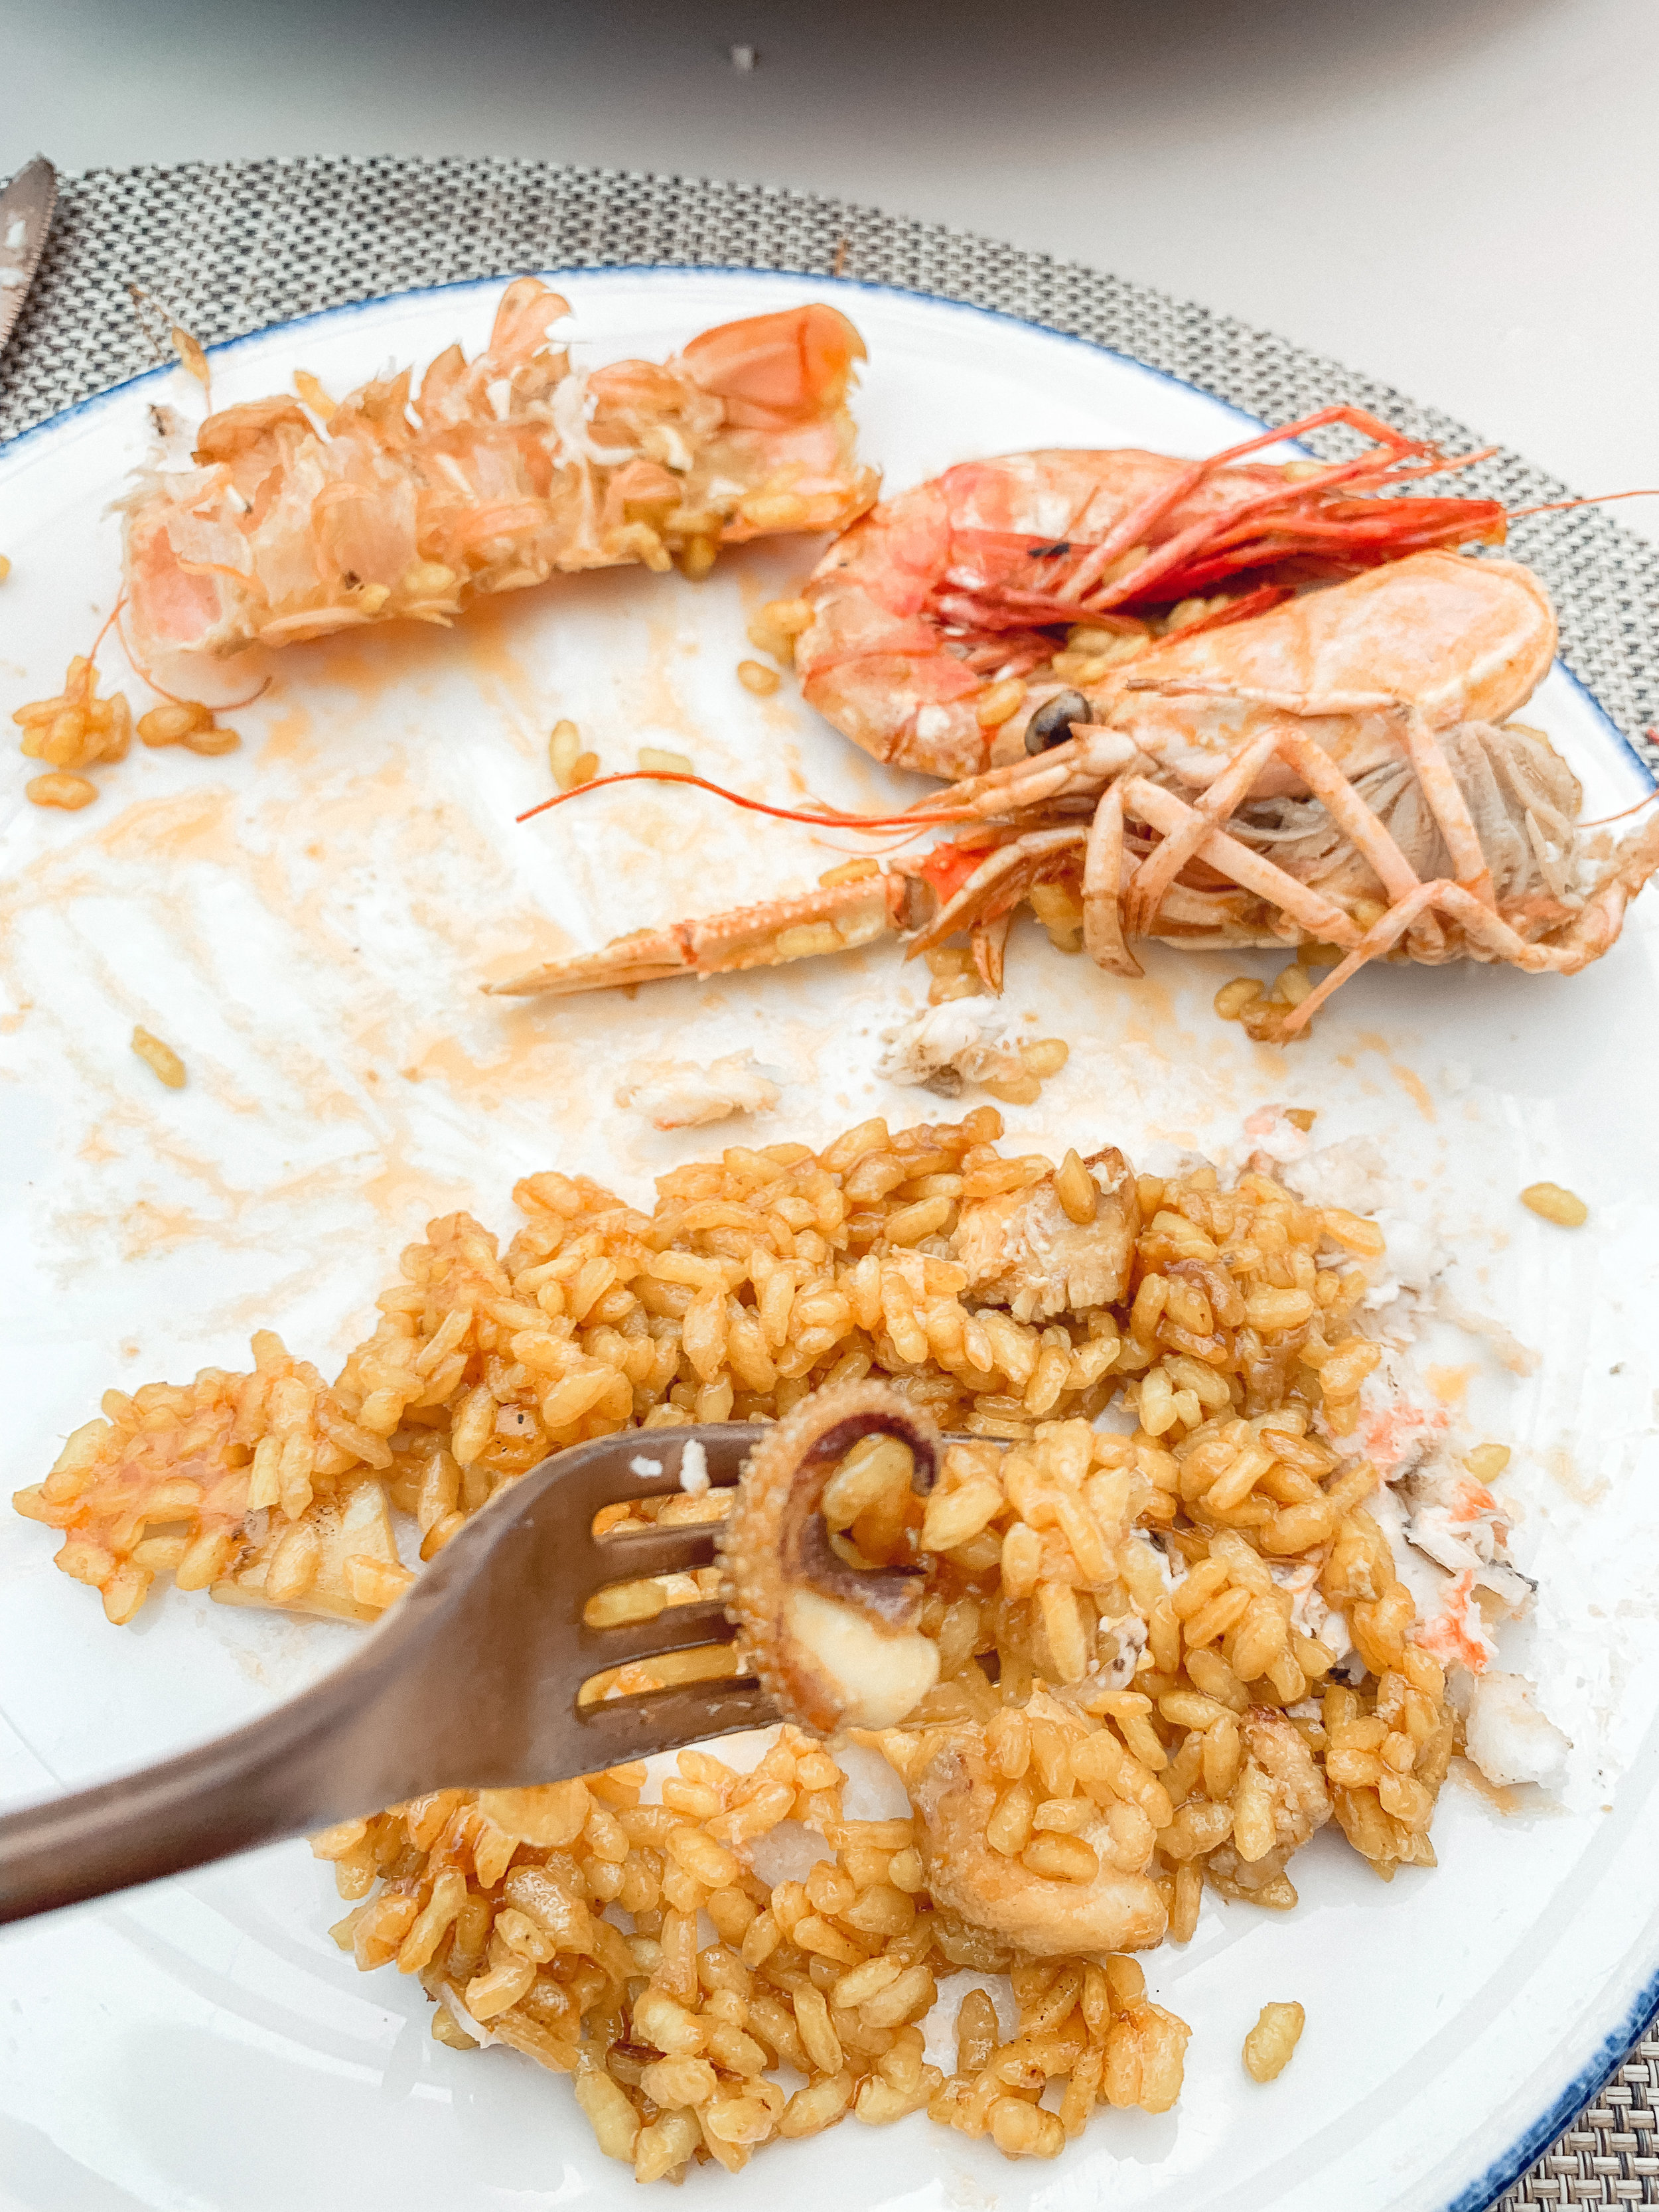 In the rice there were pieces of shrimp, fish and apparently squid! ha ha it was delicious!